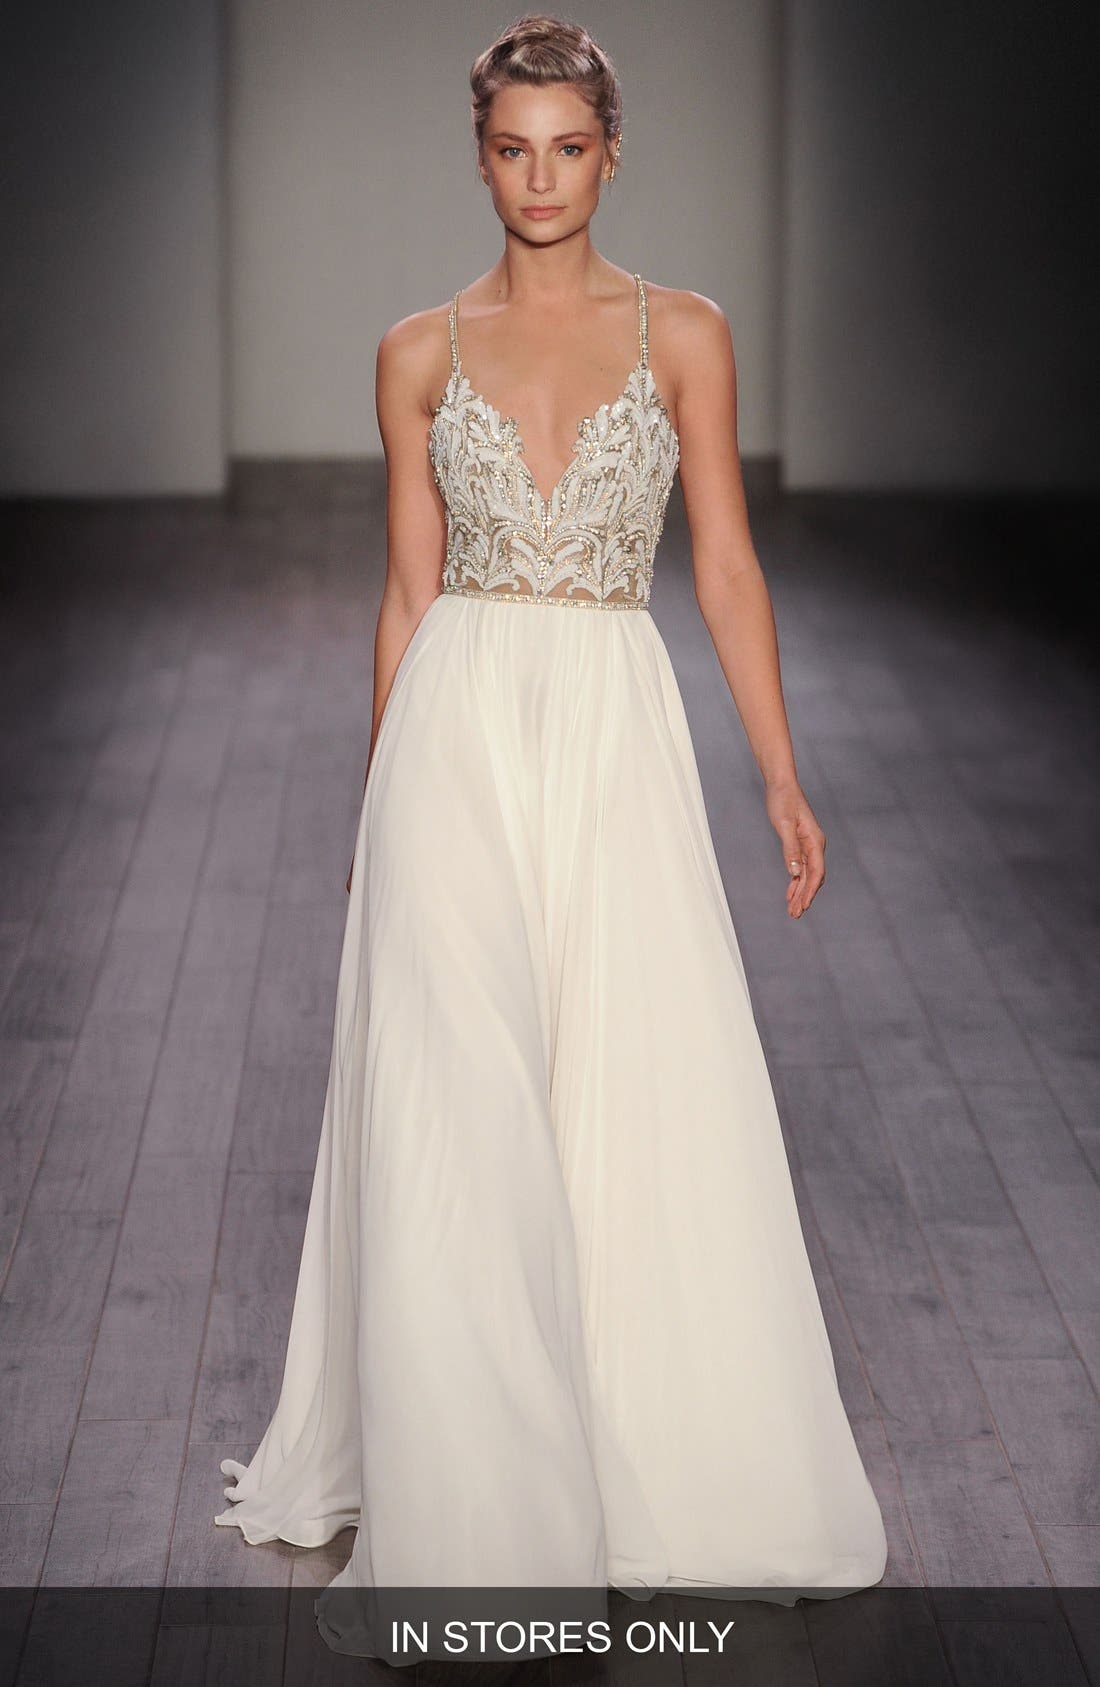 Teresa T-Strap Back Embellished Chiffon A-Line Gown,                             Main thumbnail 1, color,                             IVORY NUDE